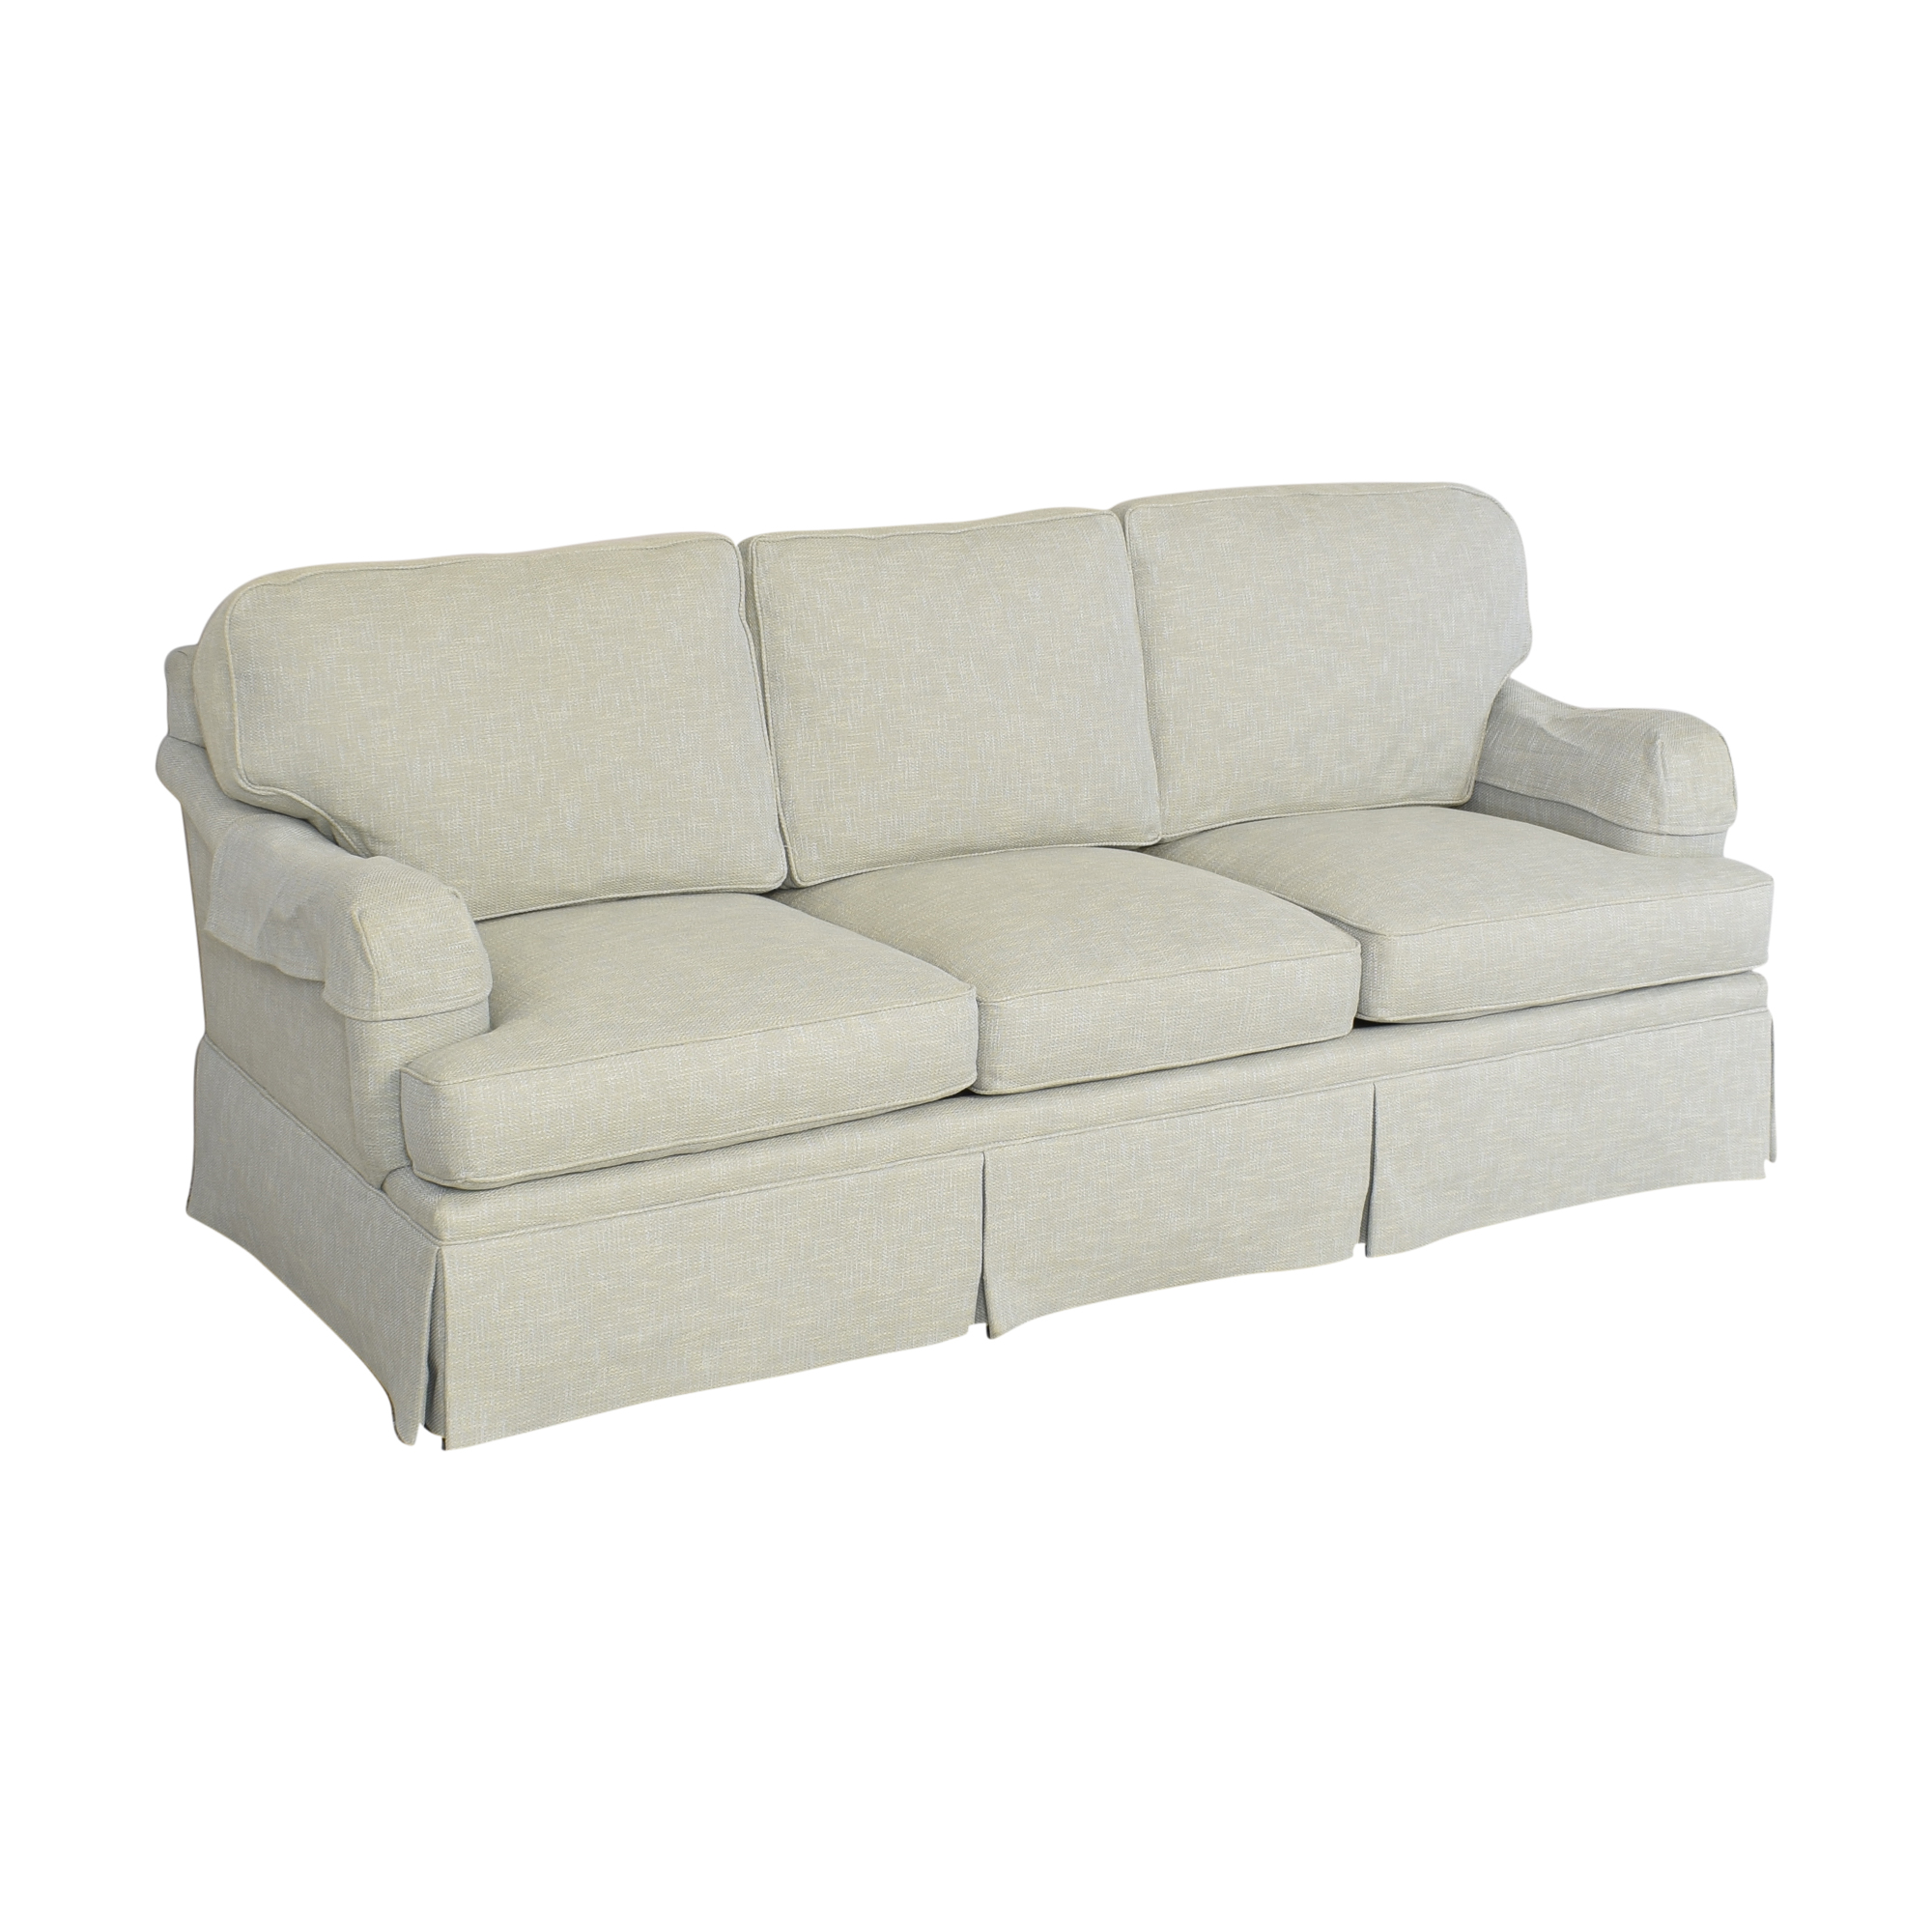 shop Henredon Upholstery Collection Sofa Henredon Furniture Sofas